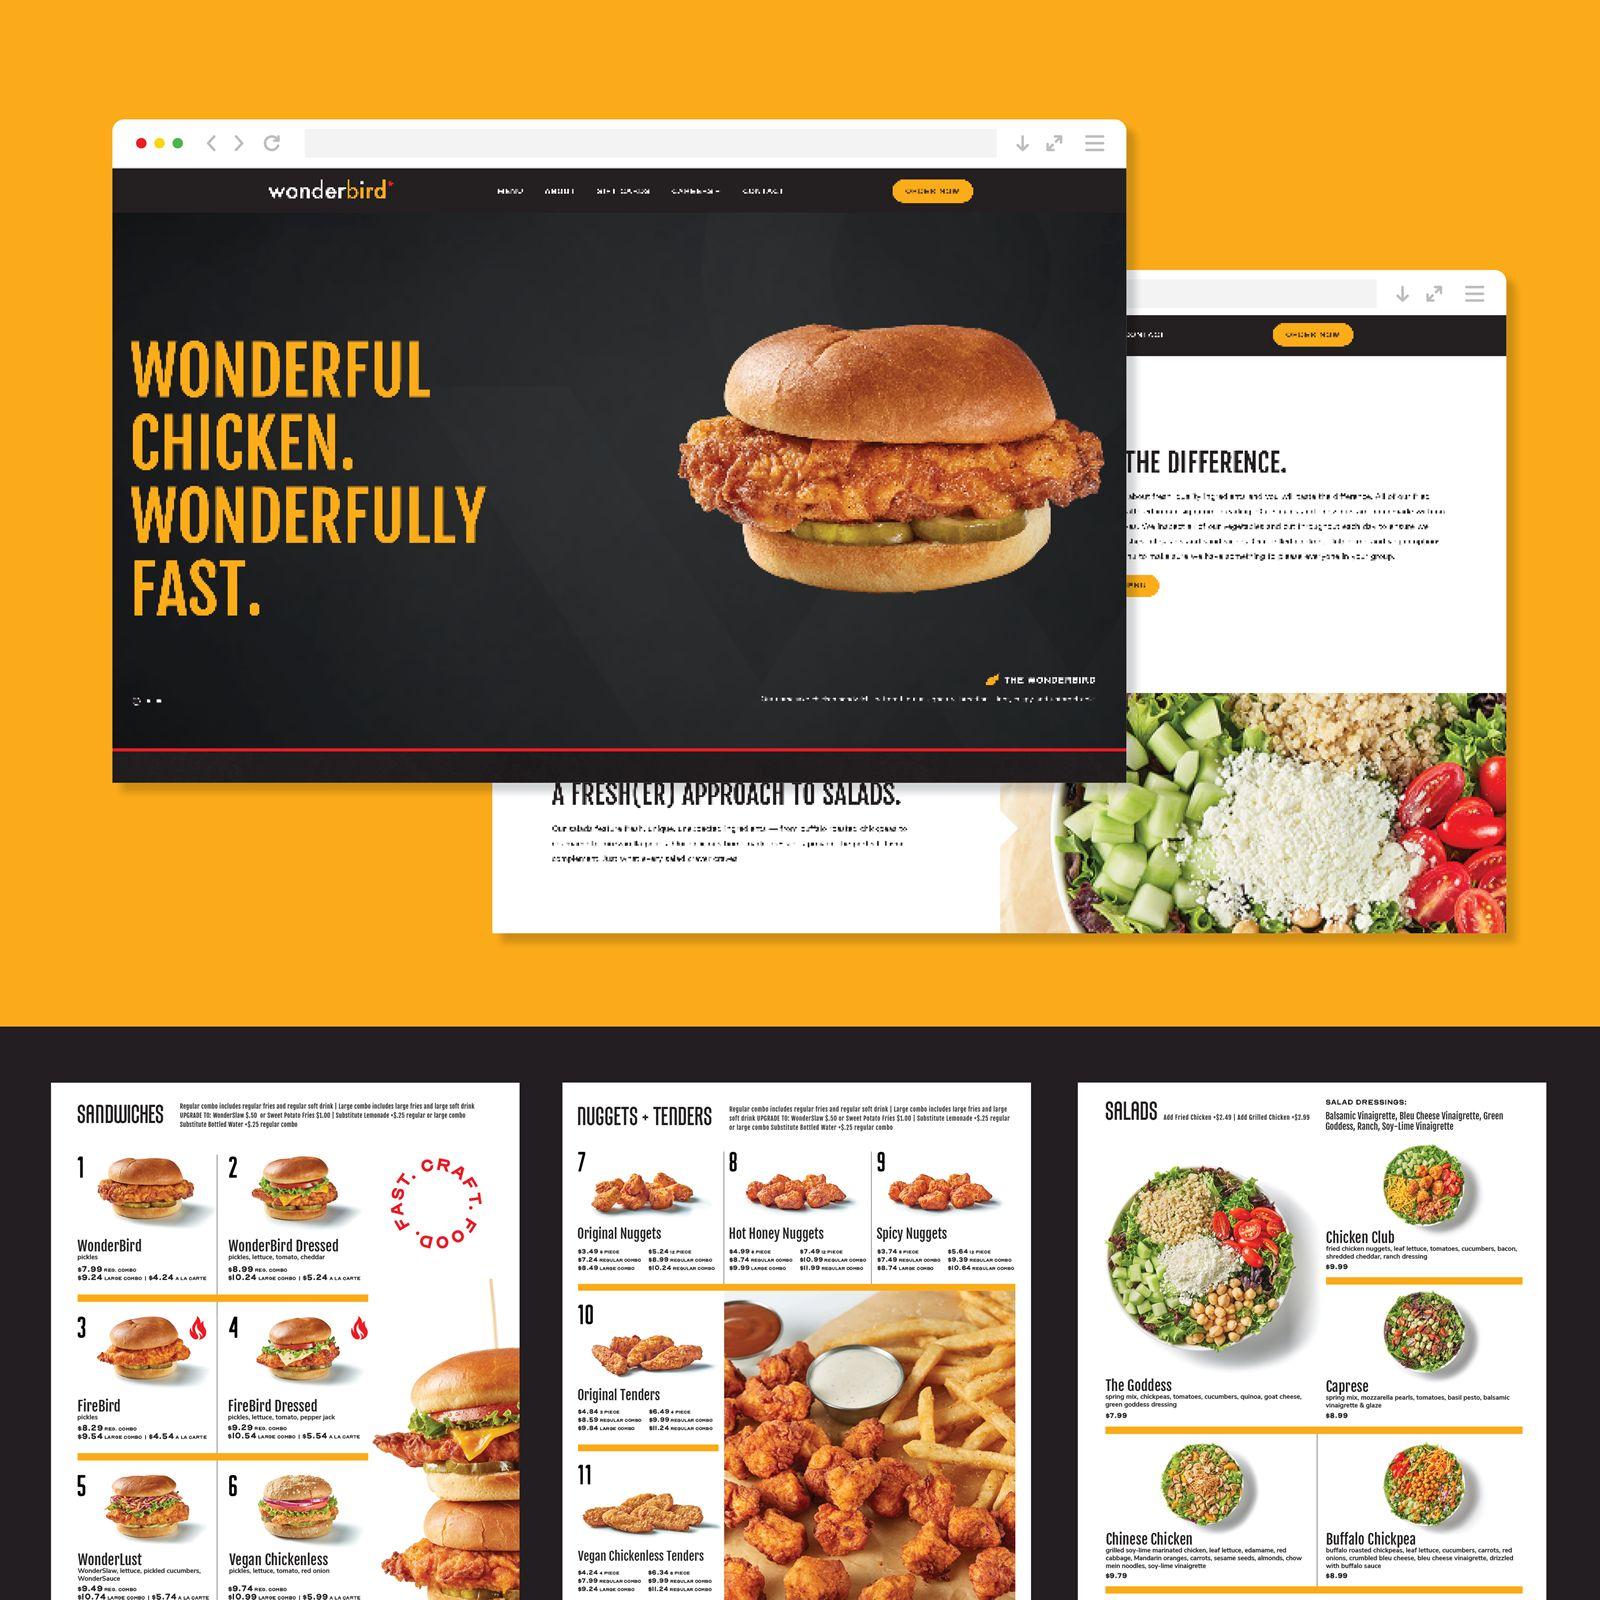 St. John Creates Brand Identity for New Fast Food Chicken Restaurant Wonderbird